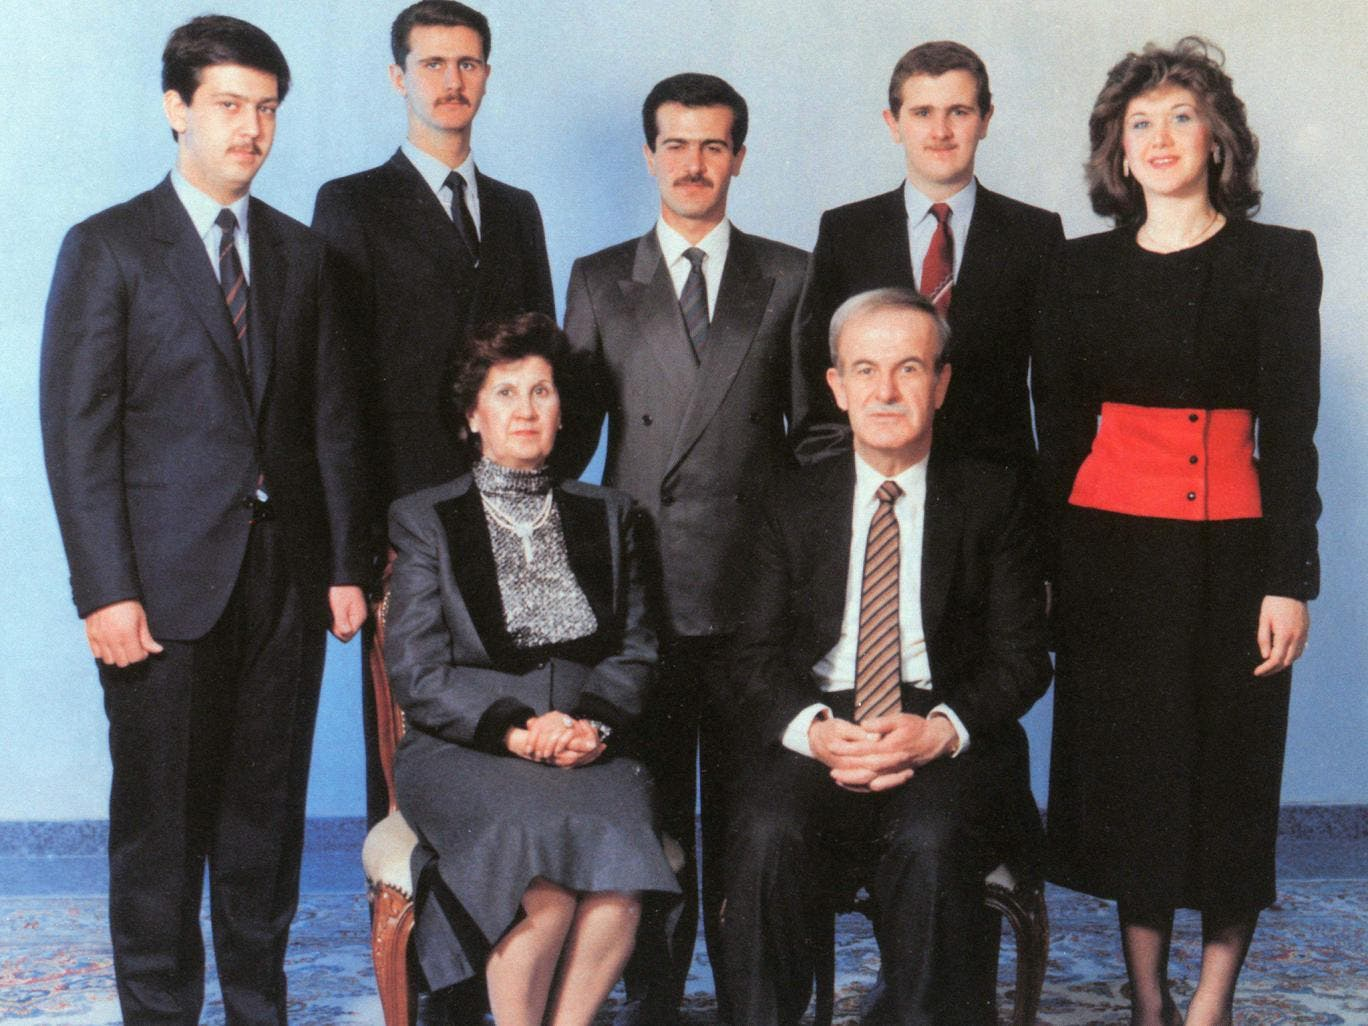 The Assad family. Aniseh Makhlouf (lower left) and Hafez al-Assad (lower right), with their five children behind them. (AFP)